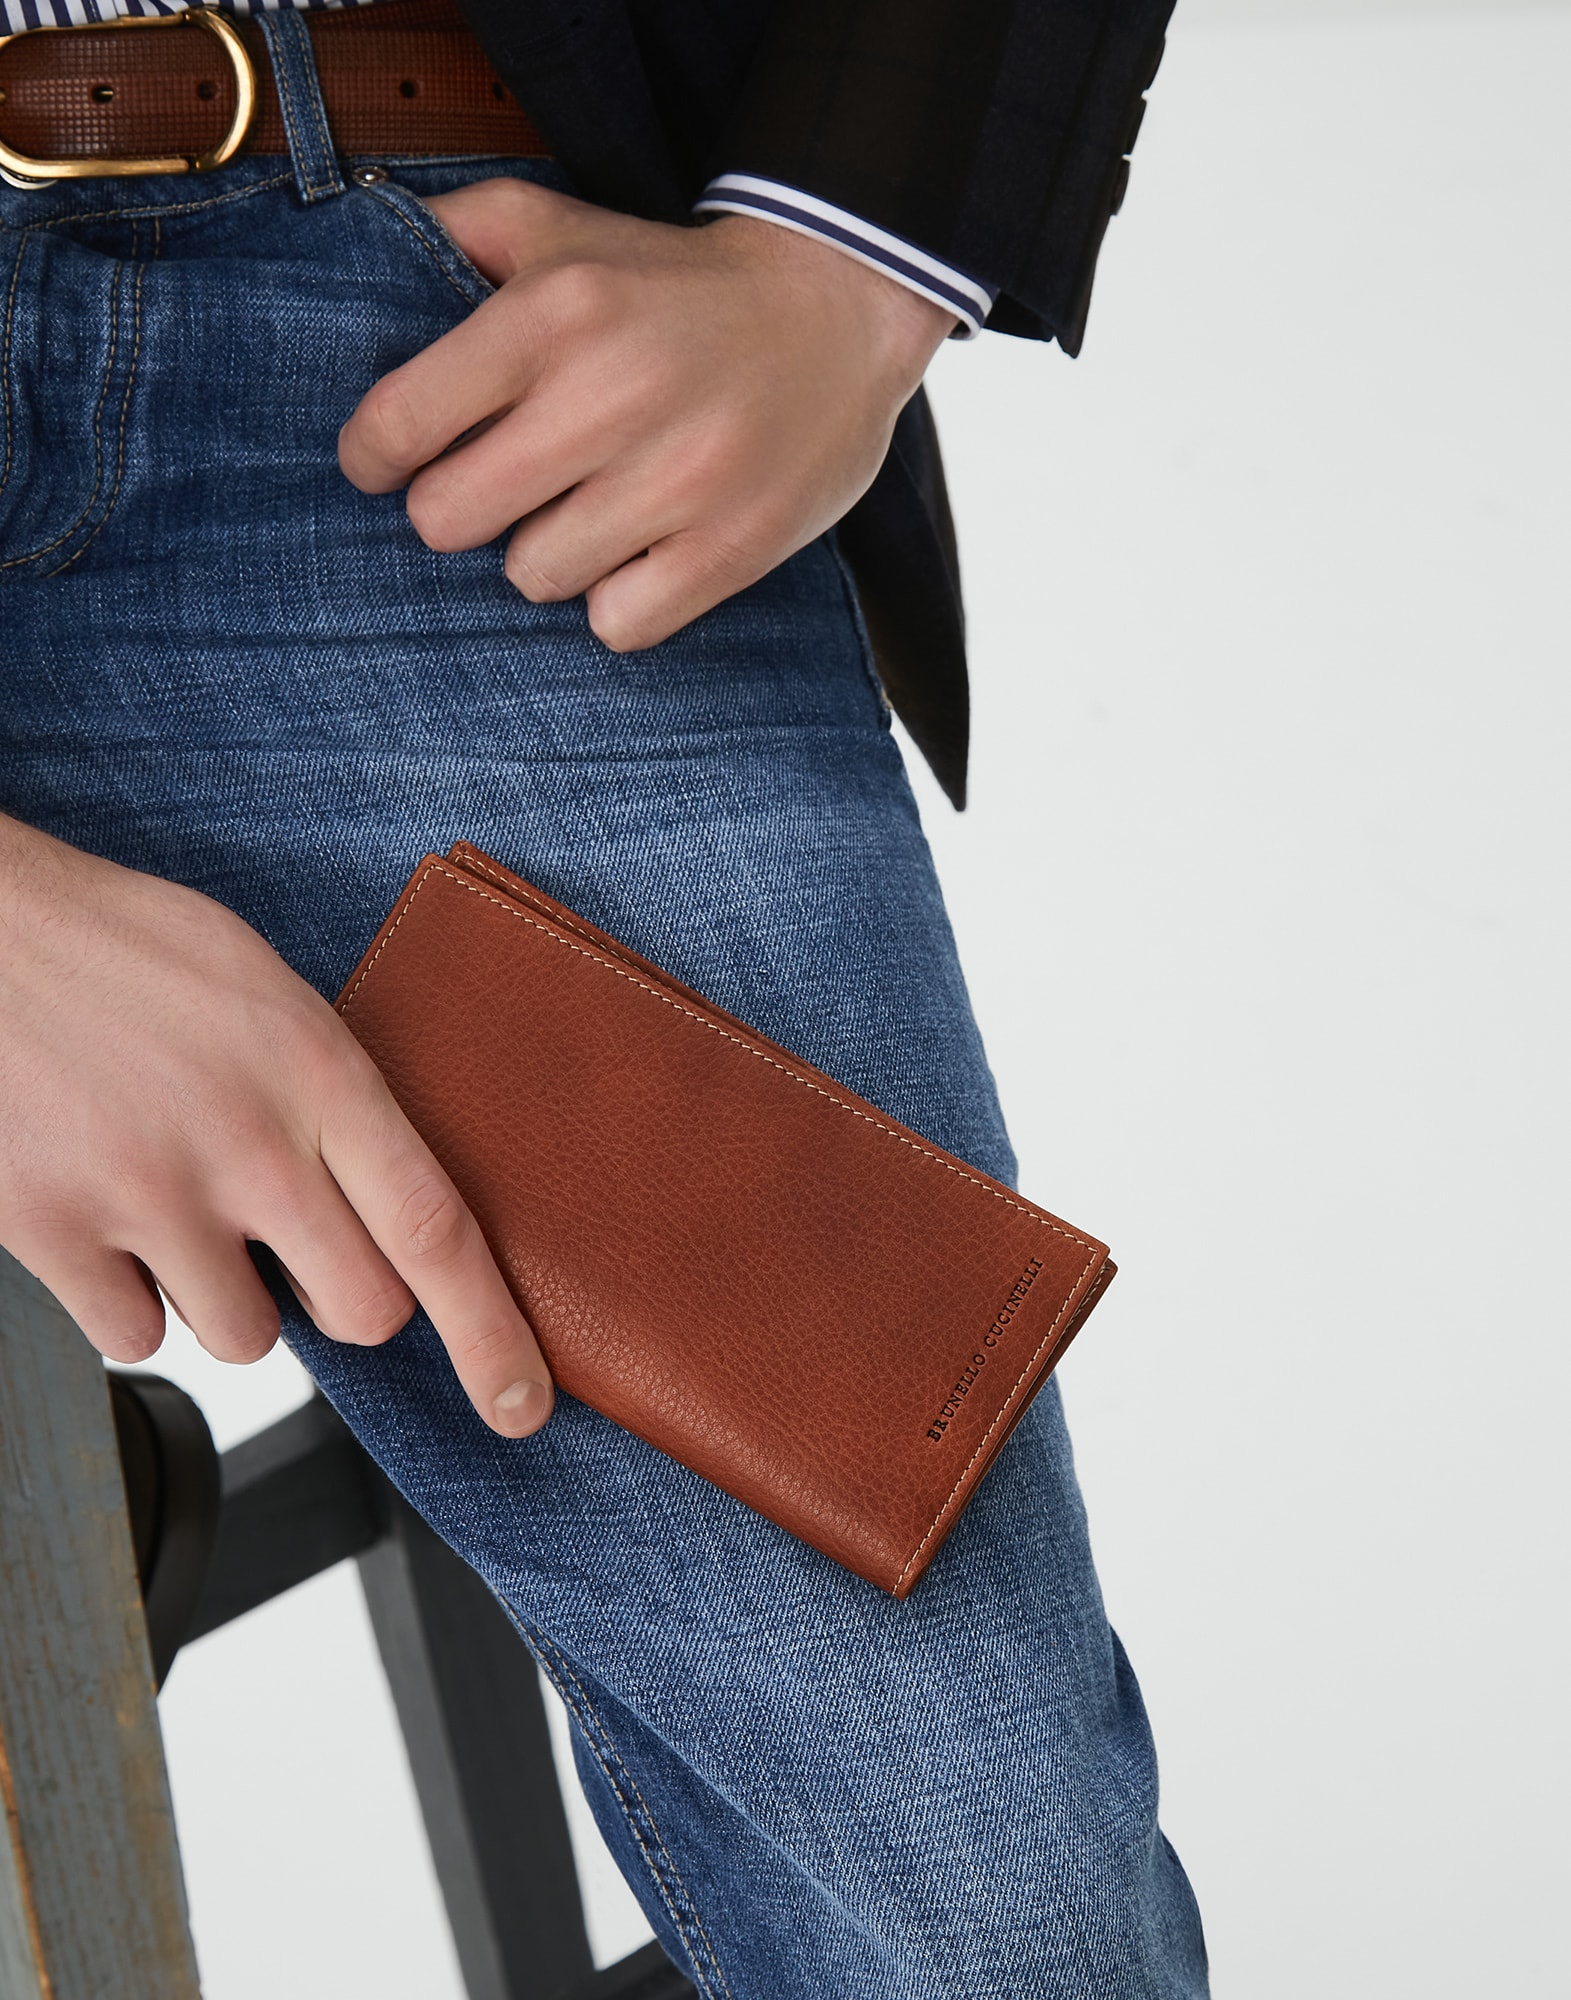 Card Holder - Editorial